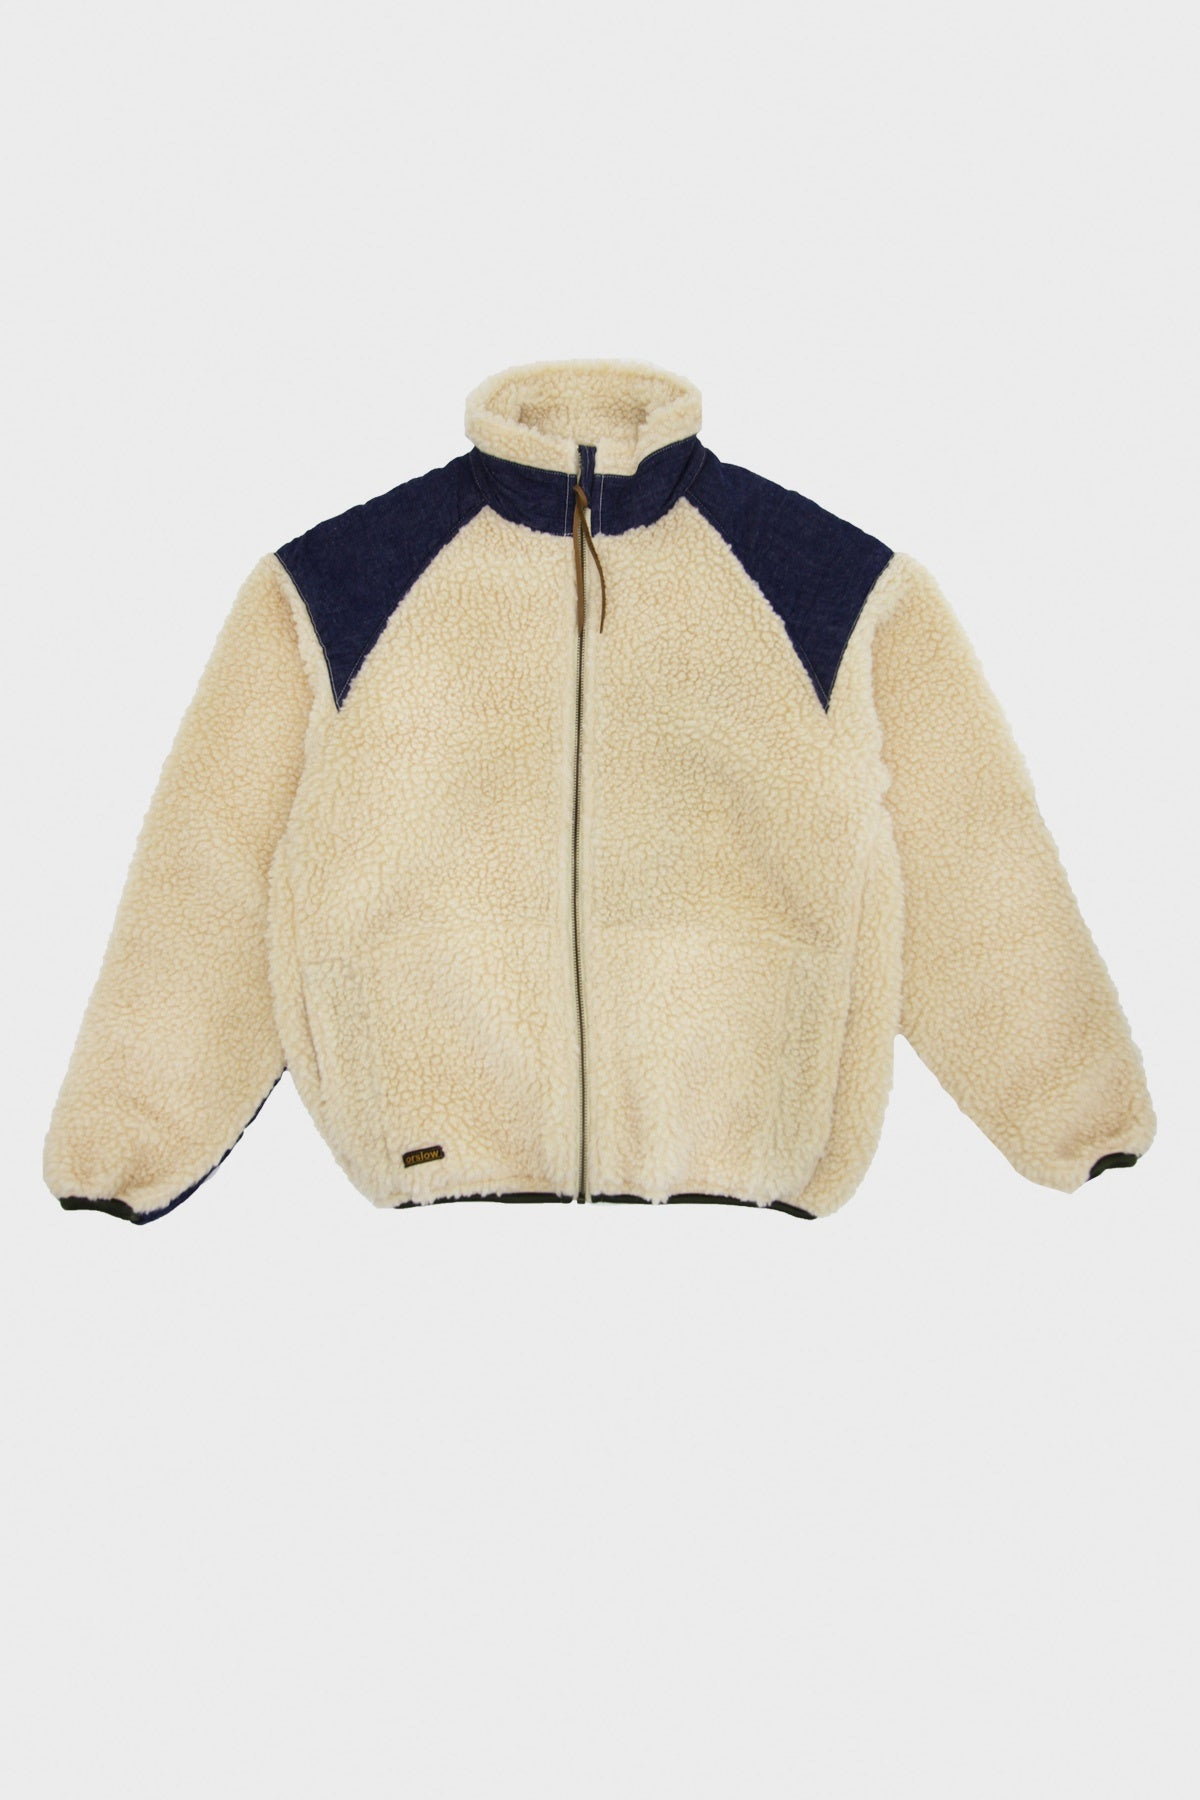 orSlow - Fleece Jacket - Ecru - Canoe Club